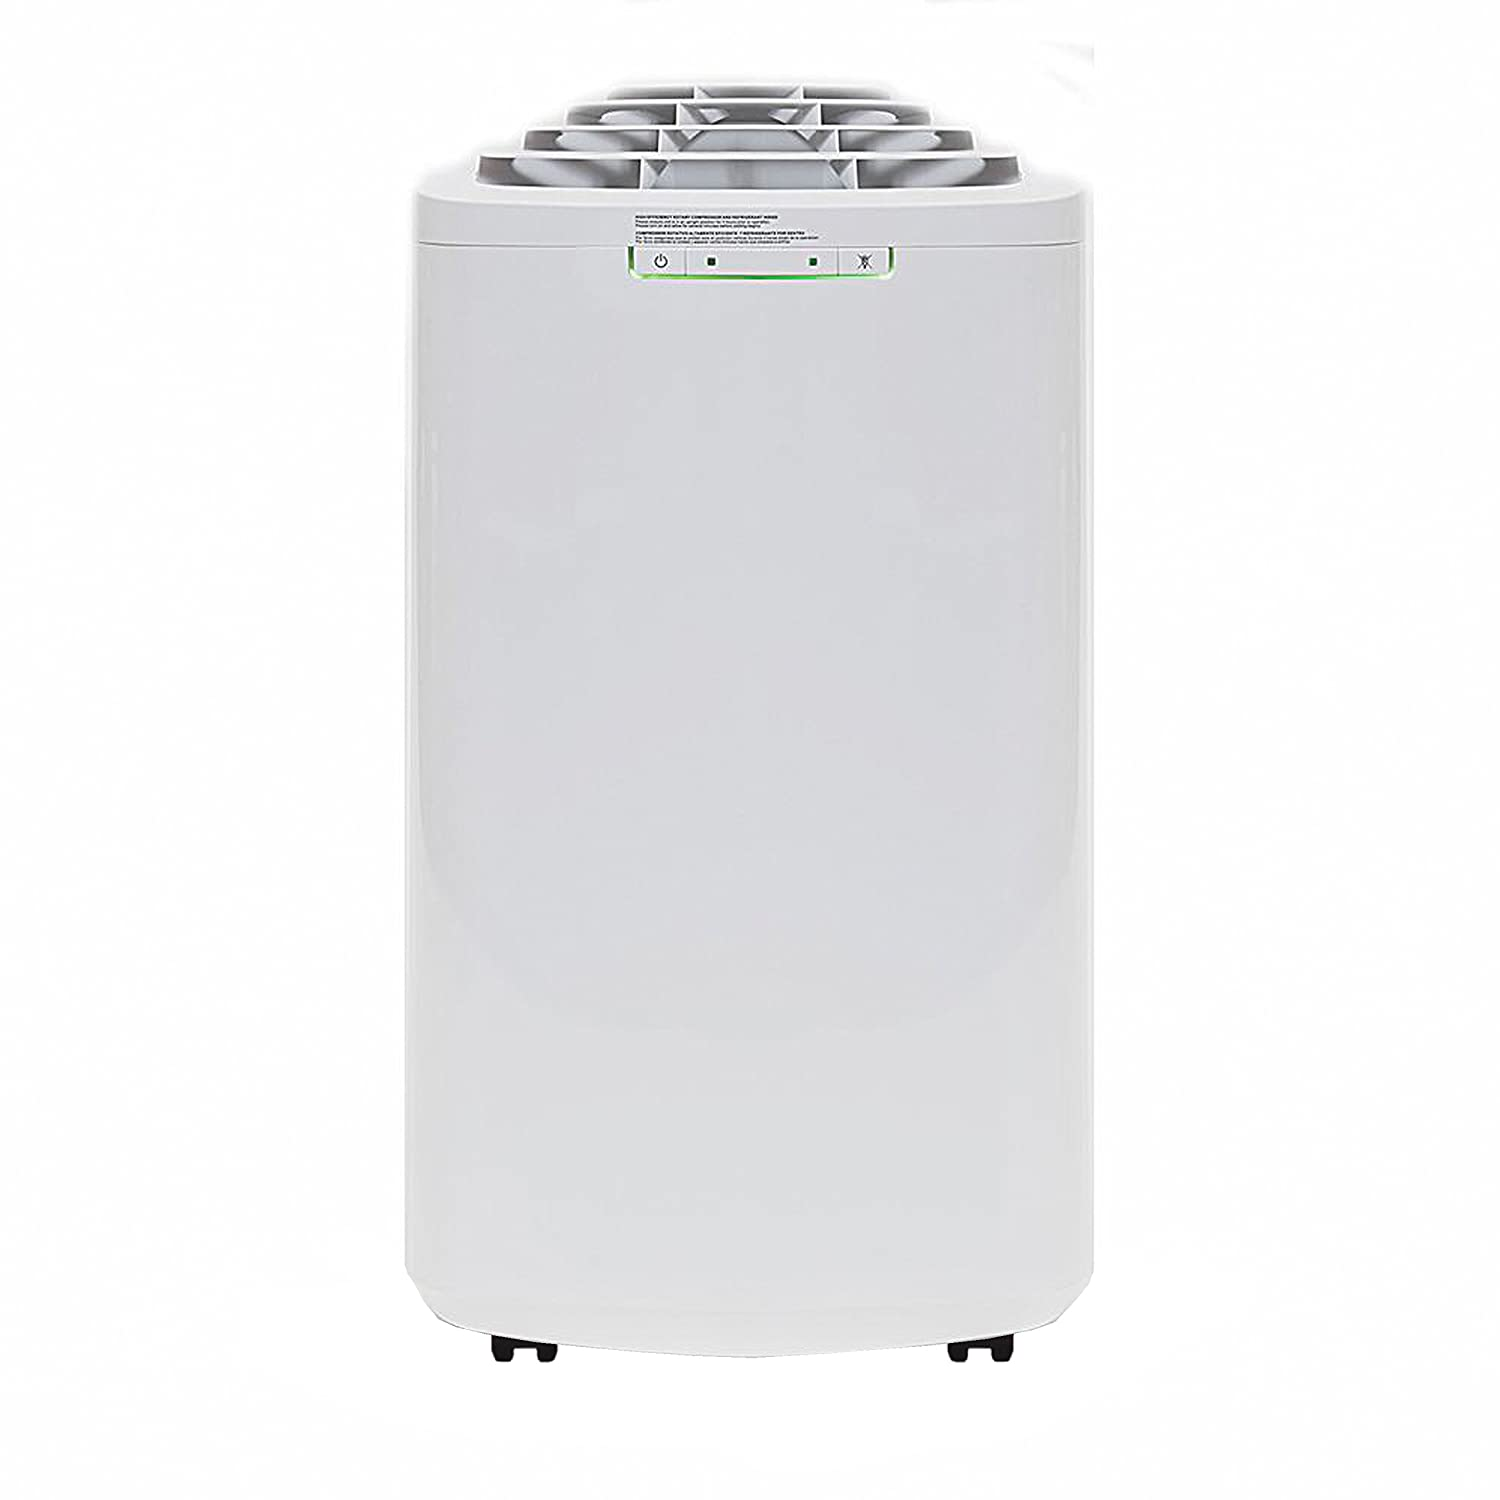 Whynter 11,000 BTU Dual Hose Portable Air Conditioner (ARC-110WD)